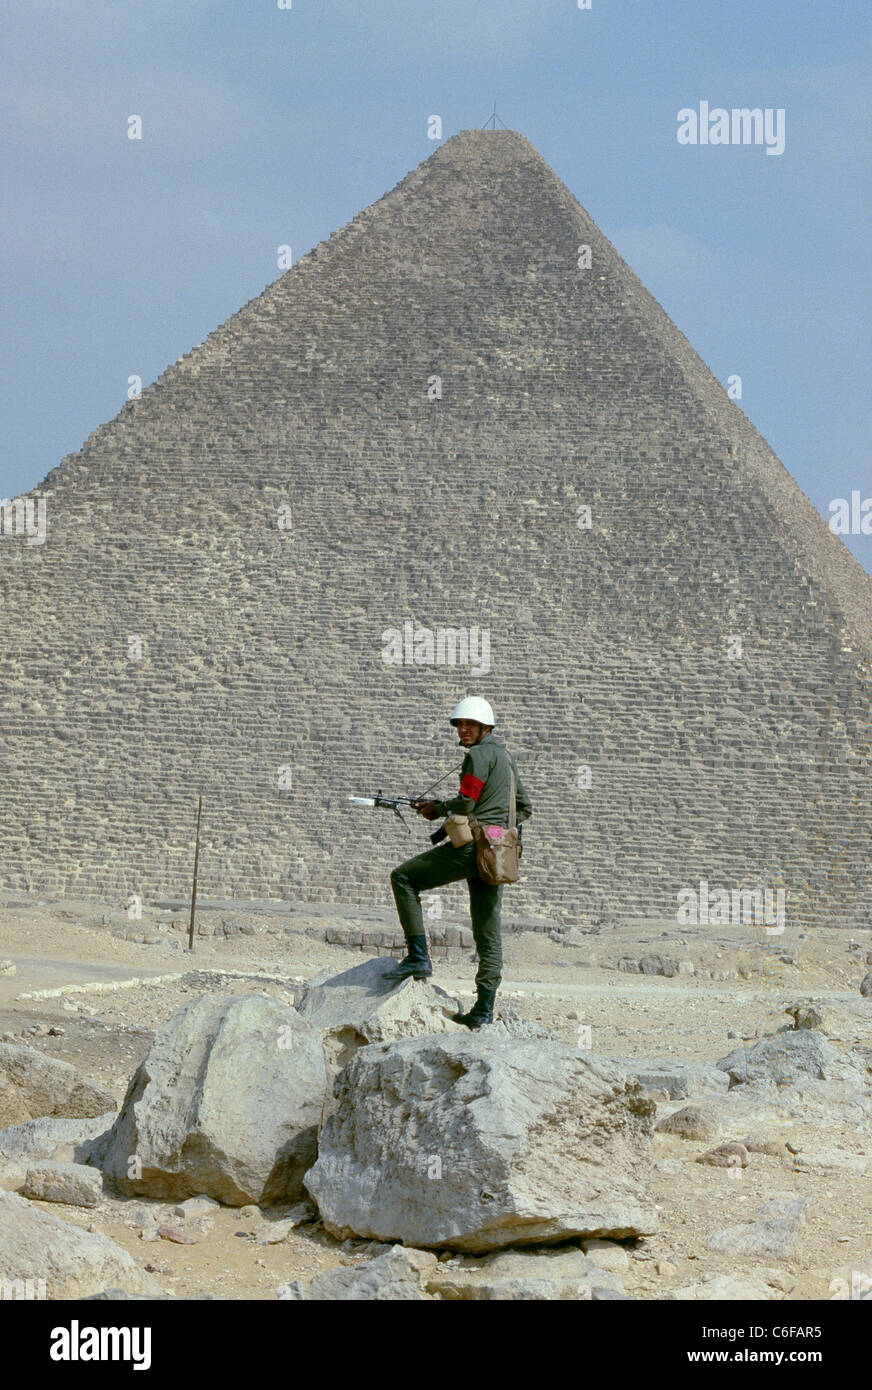 An Egyptian soldier stands guard at the The Great Pyramids of Giza following riots by the Central Security Forces - Stock Image